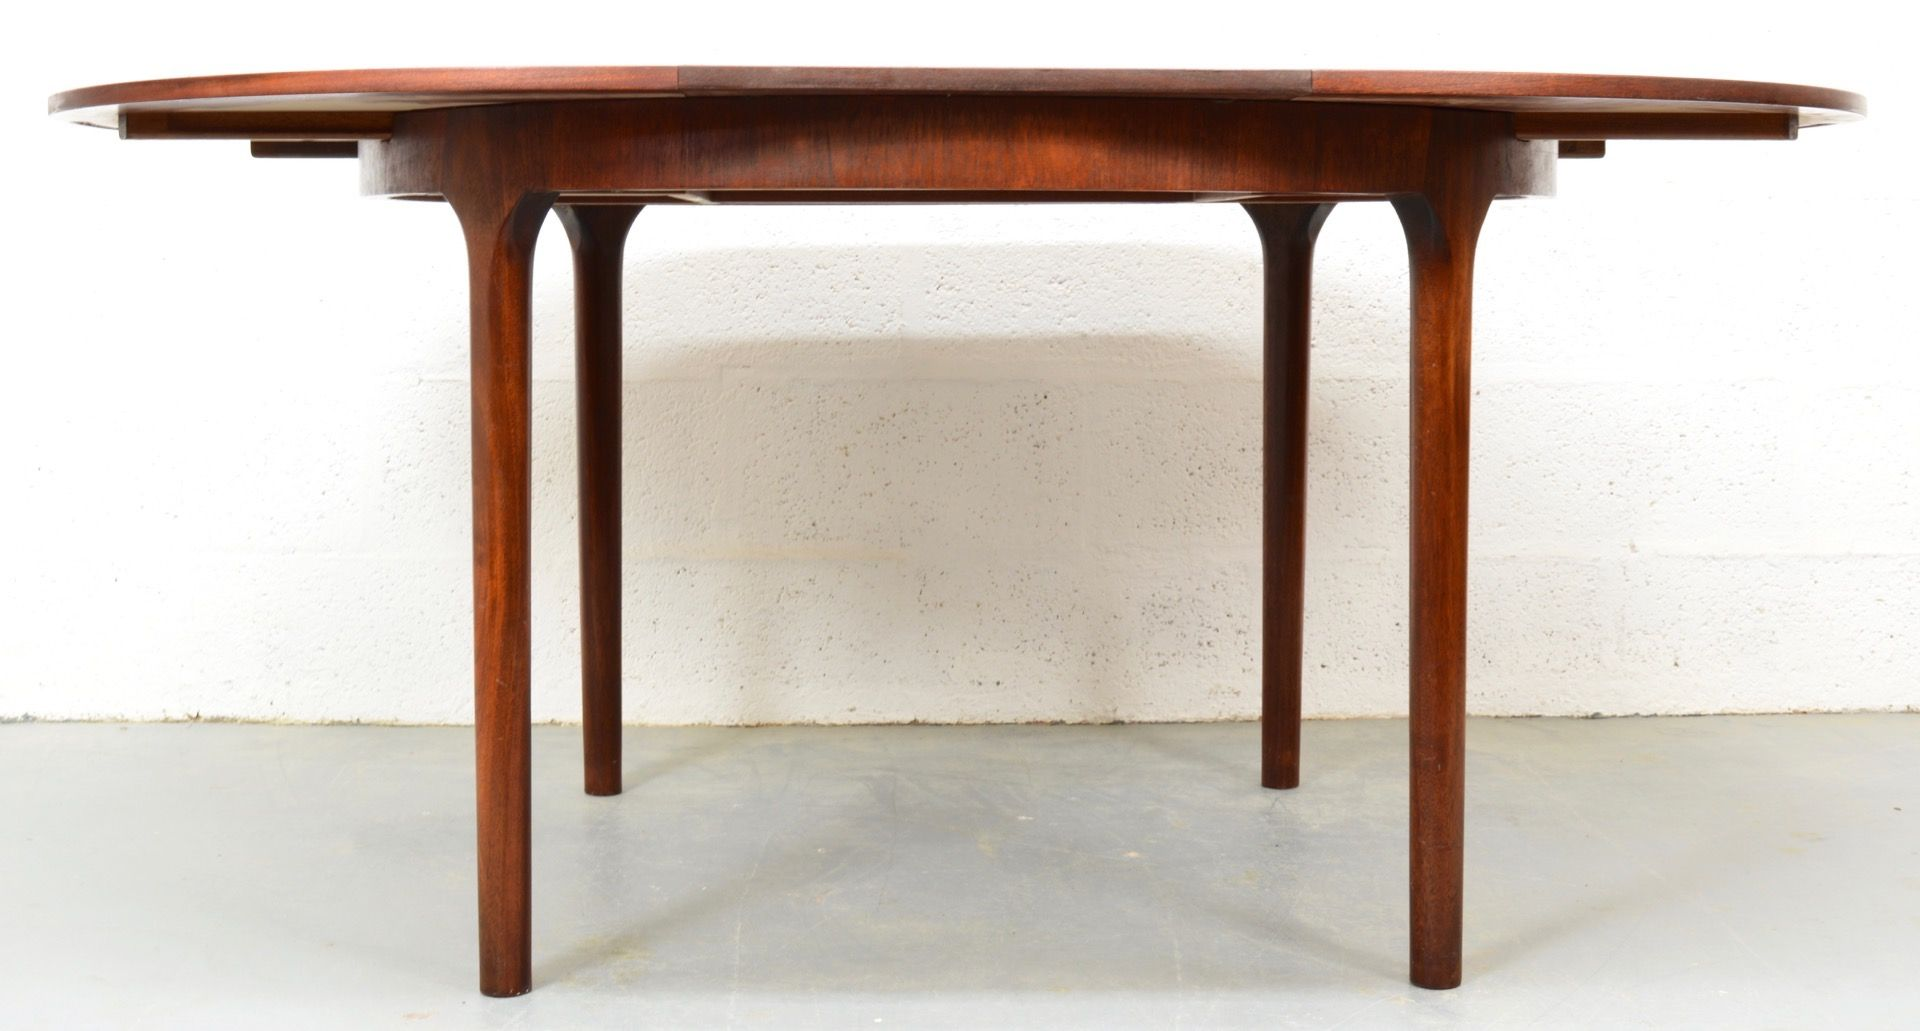 Vintage Rosewood Extendable Dining Table from McIntosh for  : vintage rosewood extendable dining table from mcintosh 7 from www.pamono.com size 1920 x 1031 jpeg 250kB